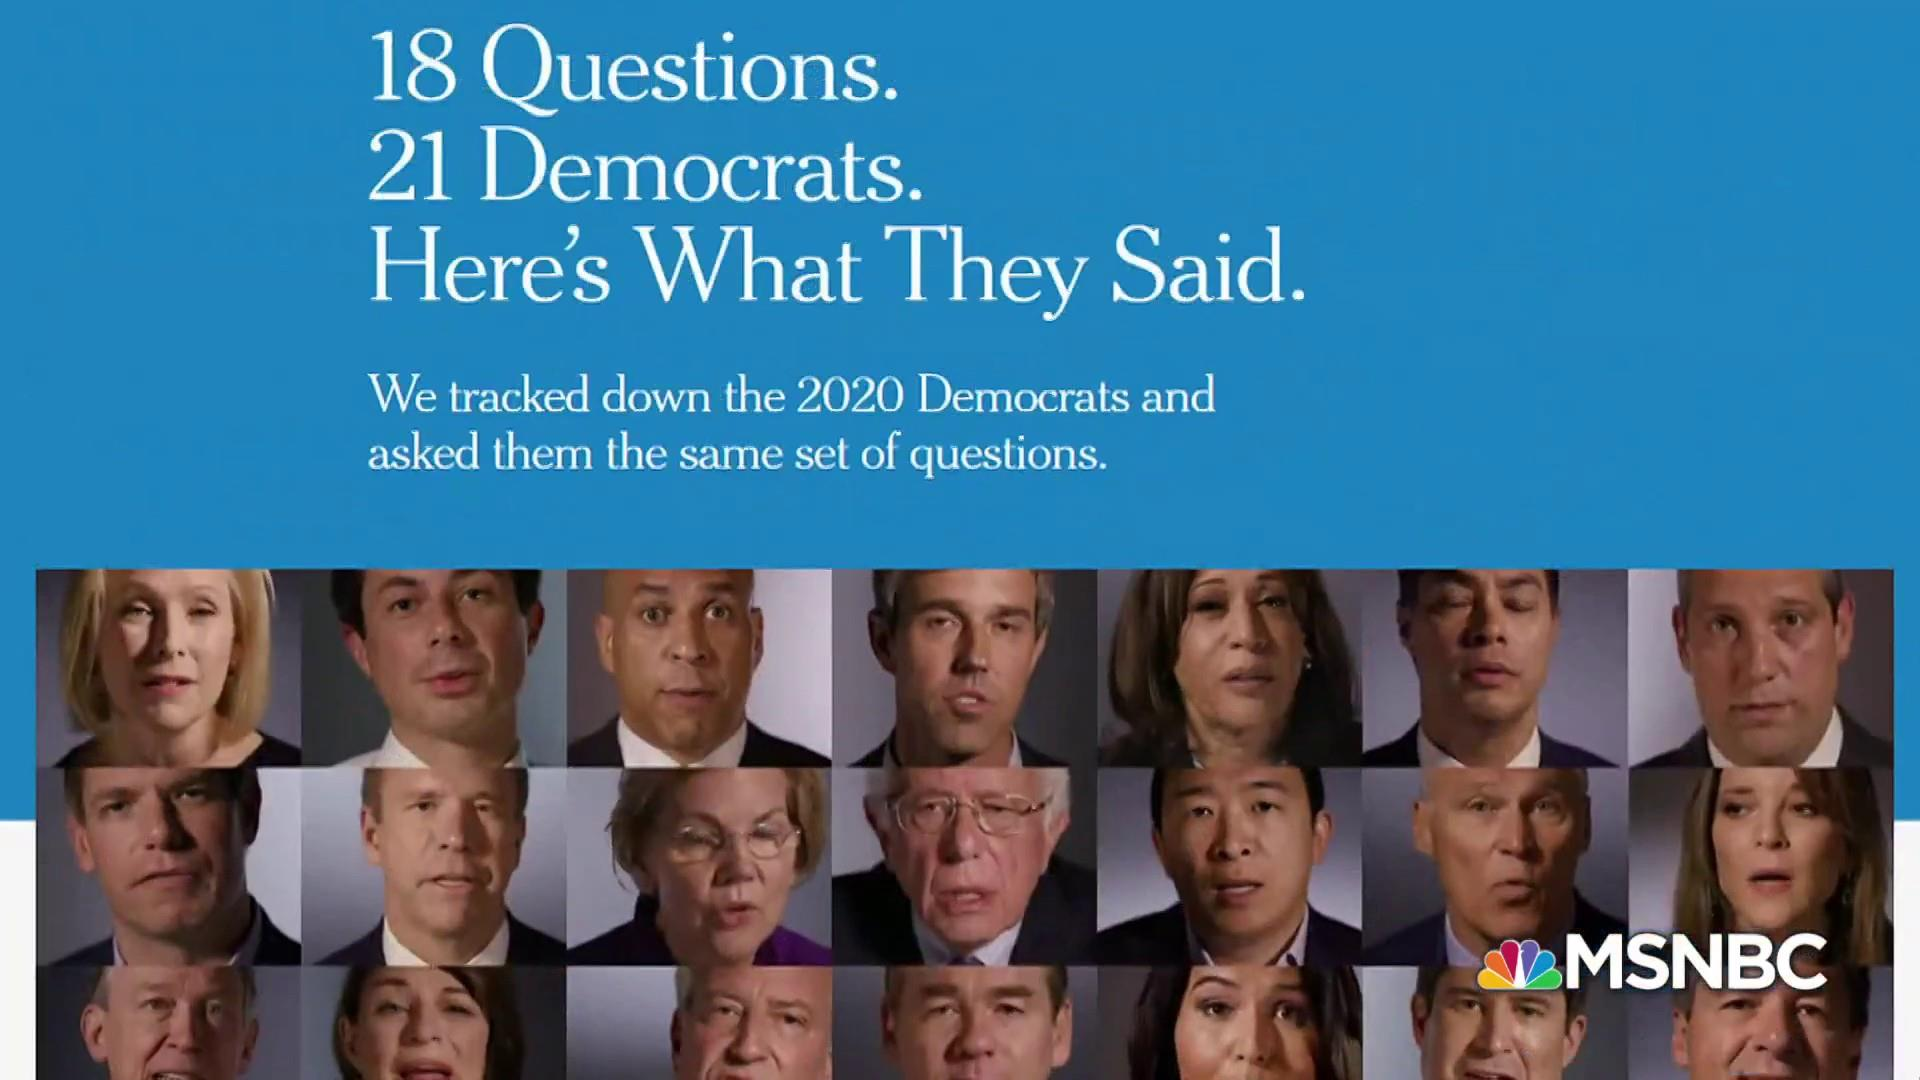 2020 Democrats answer 18 questions: From policy to comfort food